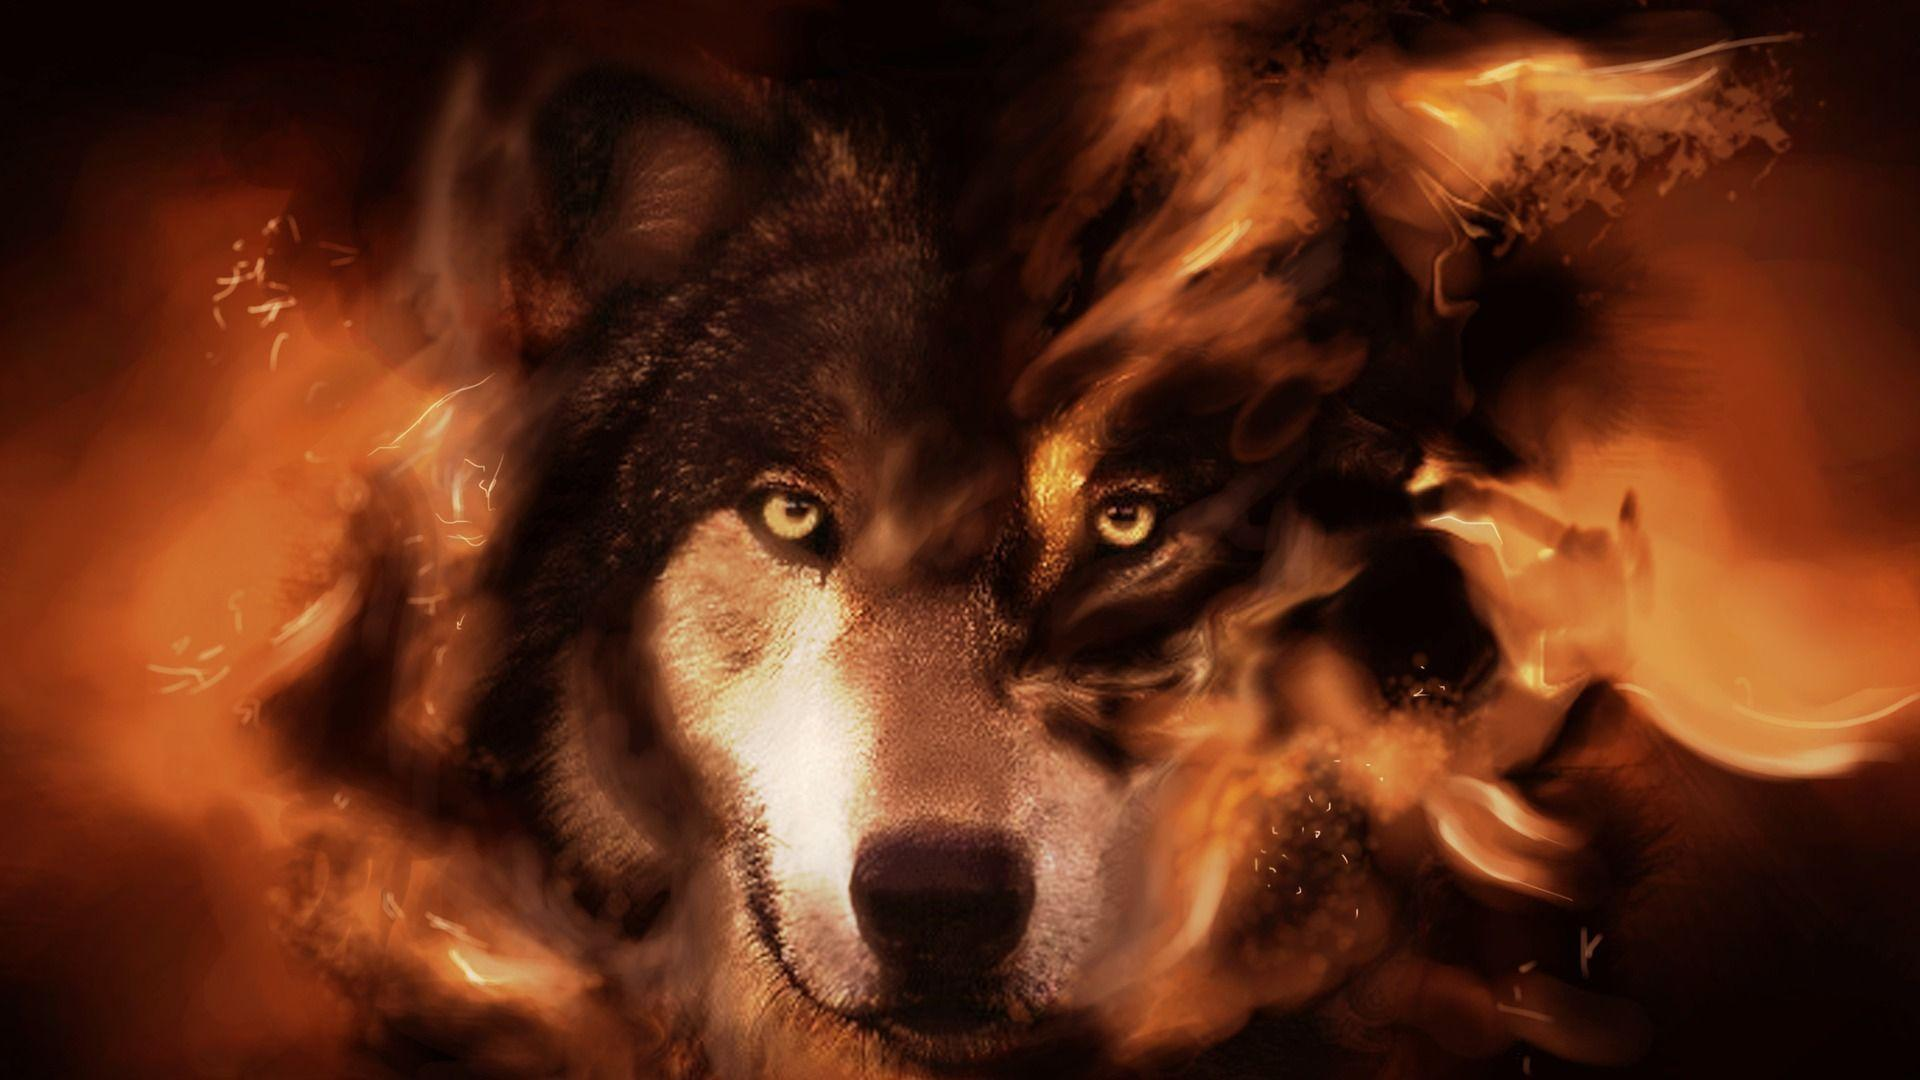 wolf wallpapers ndash animal - photo #28